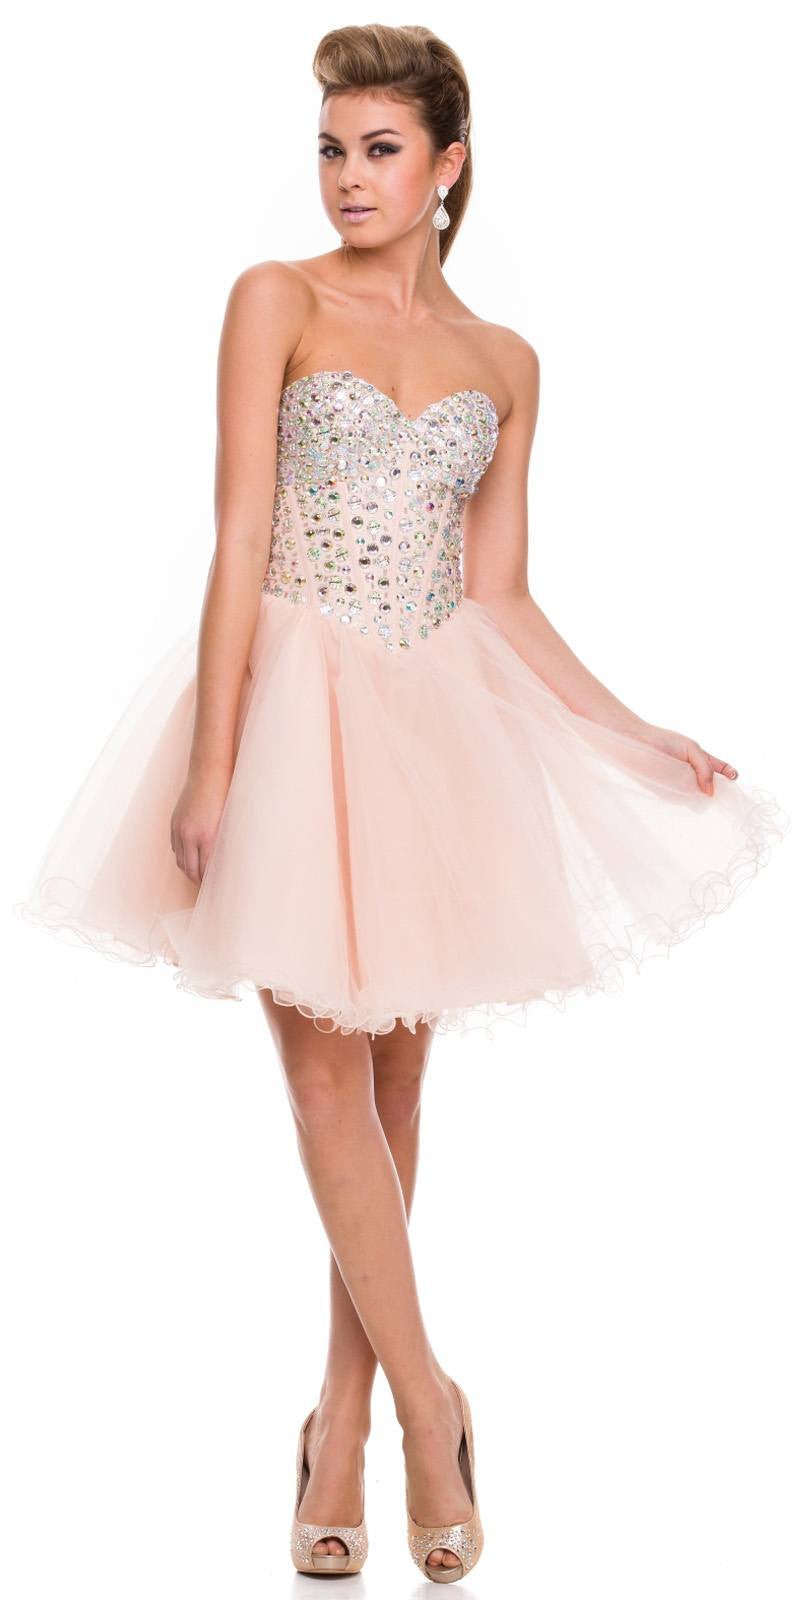 Strapless Rhinestone Embellished Bodice Short Prom Dress Nude ...